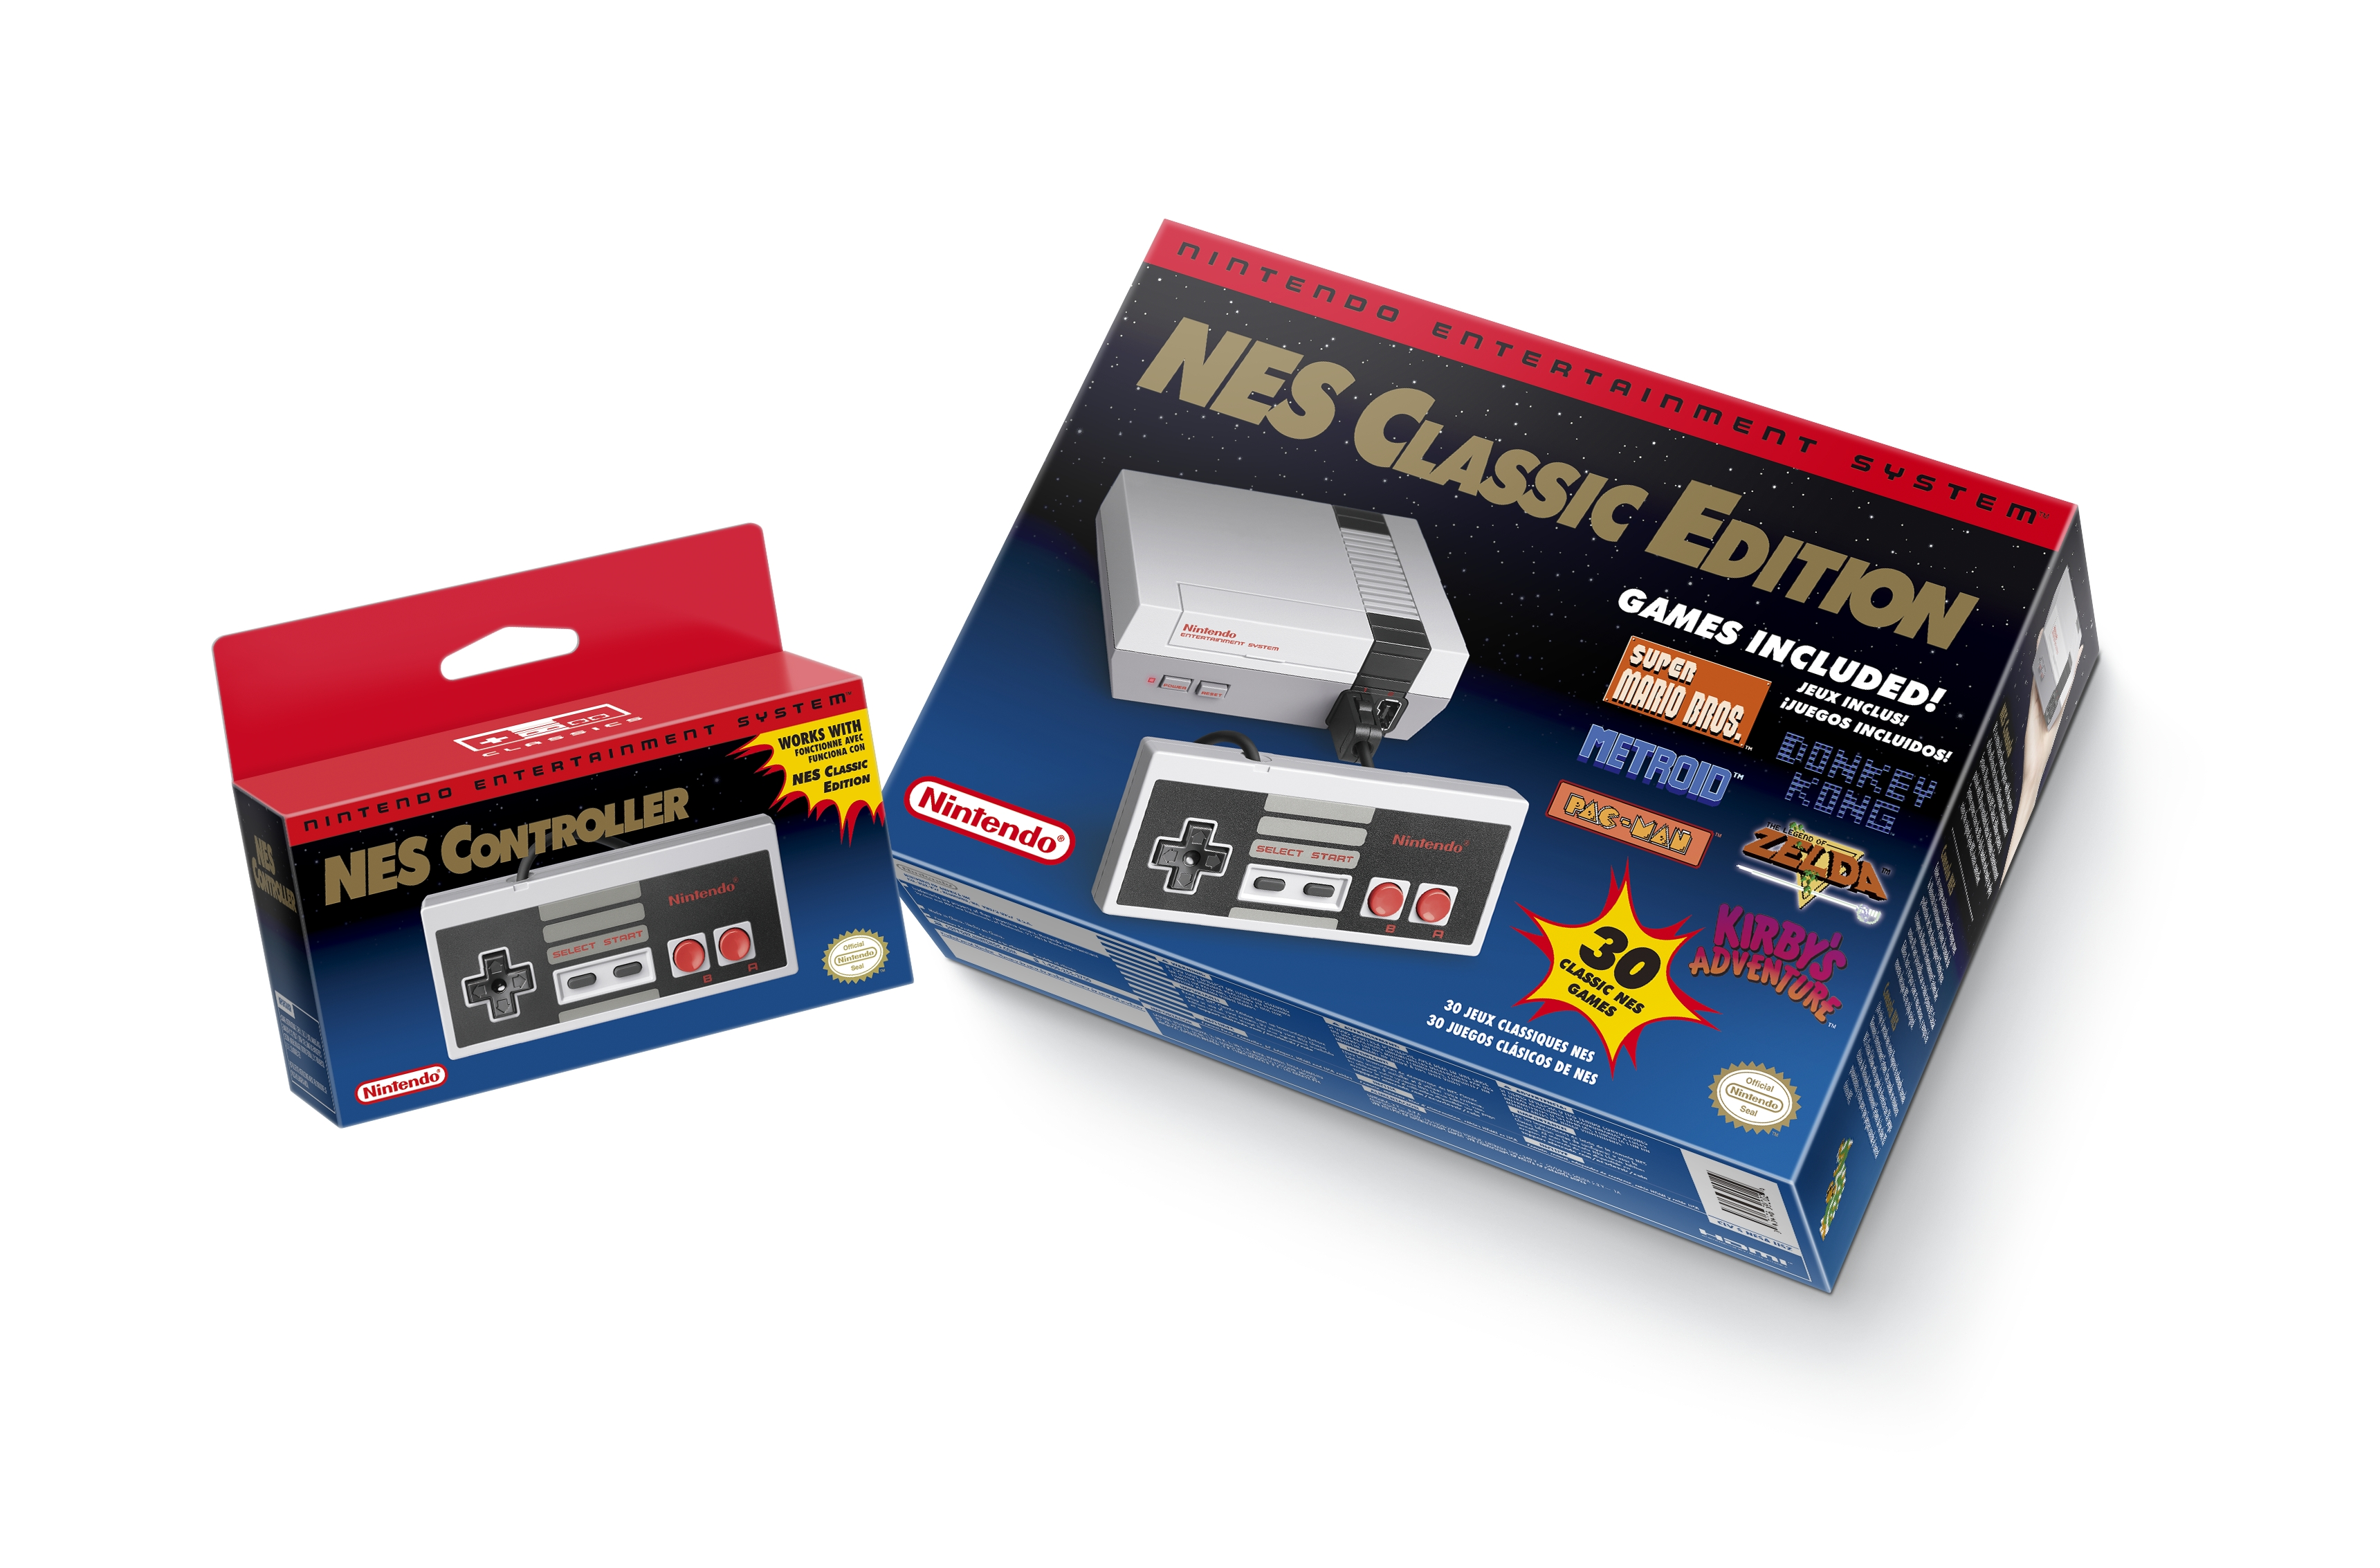 What's old is new again with the Nintendo Entertainment System: NES Classic Edition. (Photo: Business Wire)